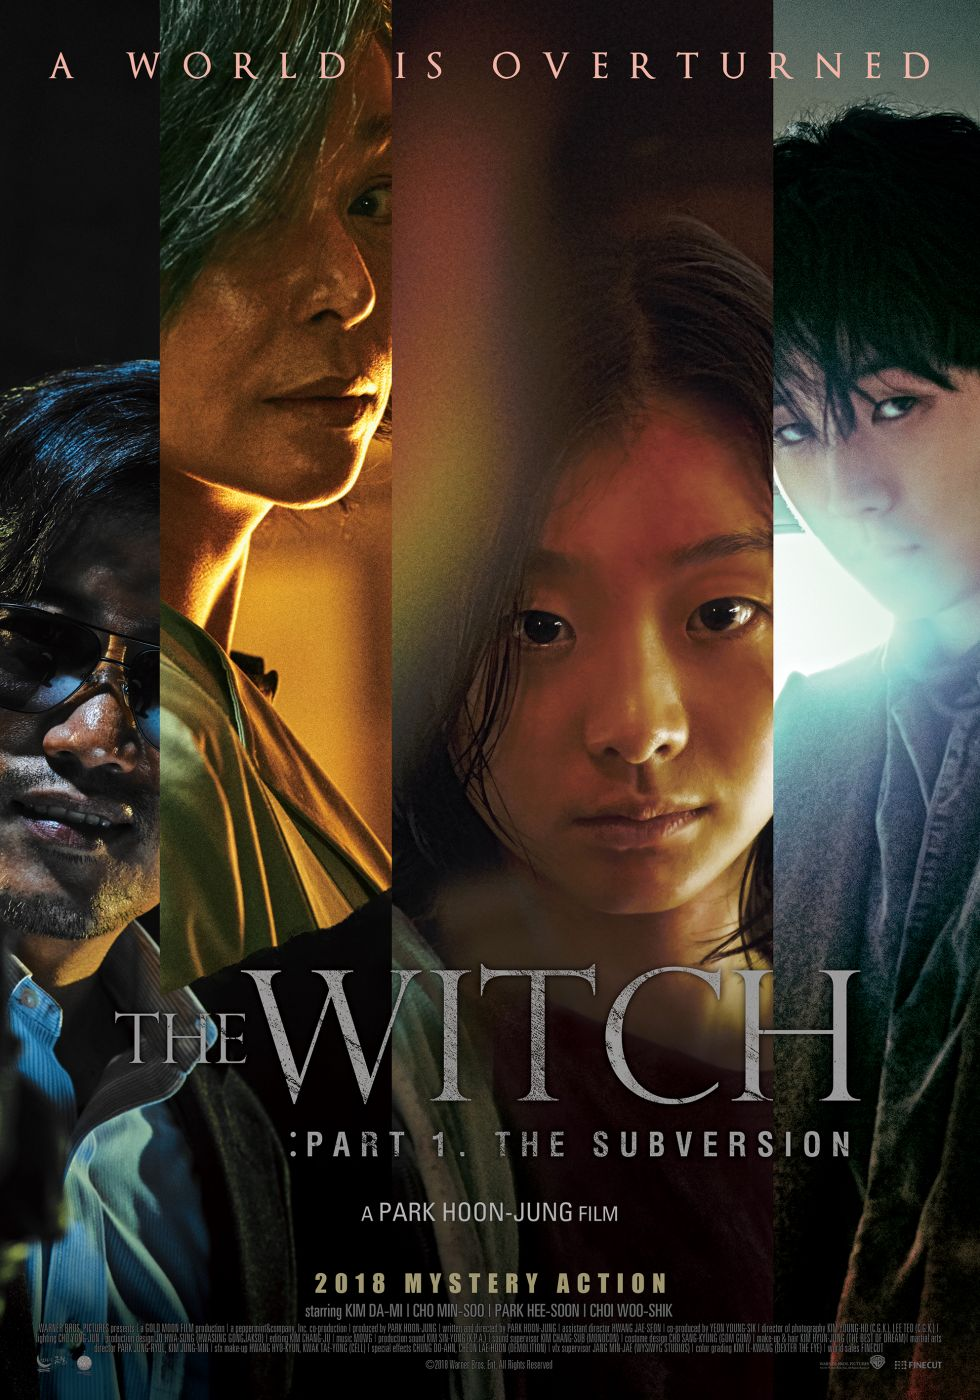 The witch part 1_ The subversion